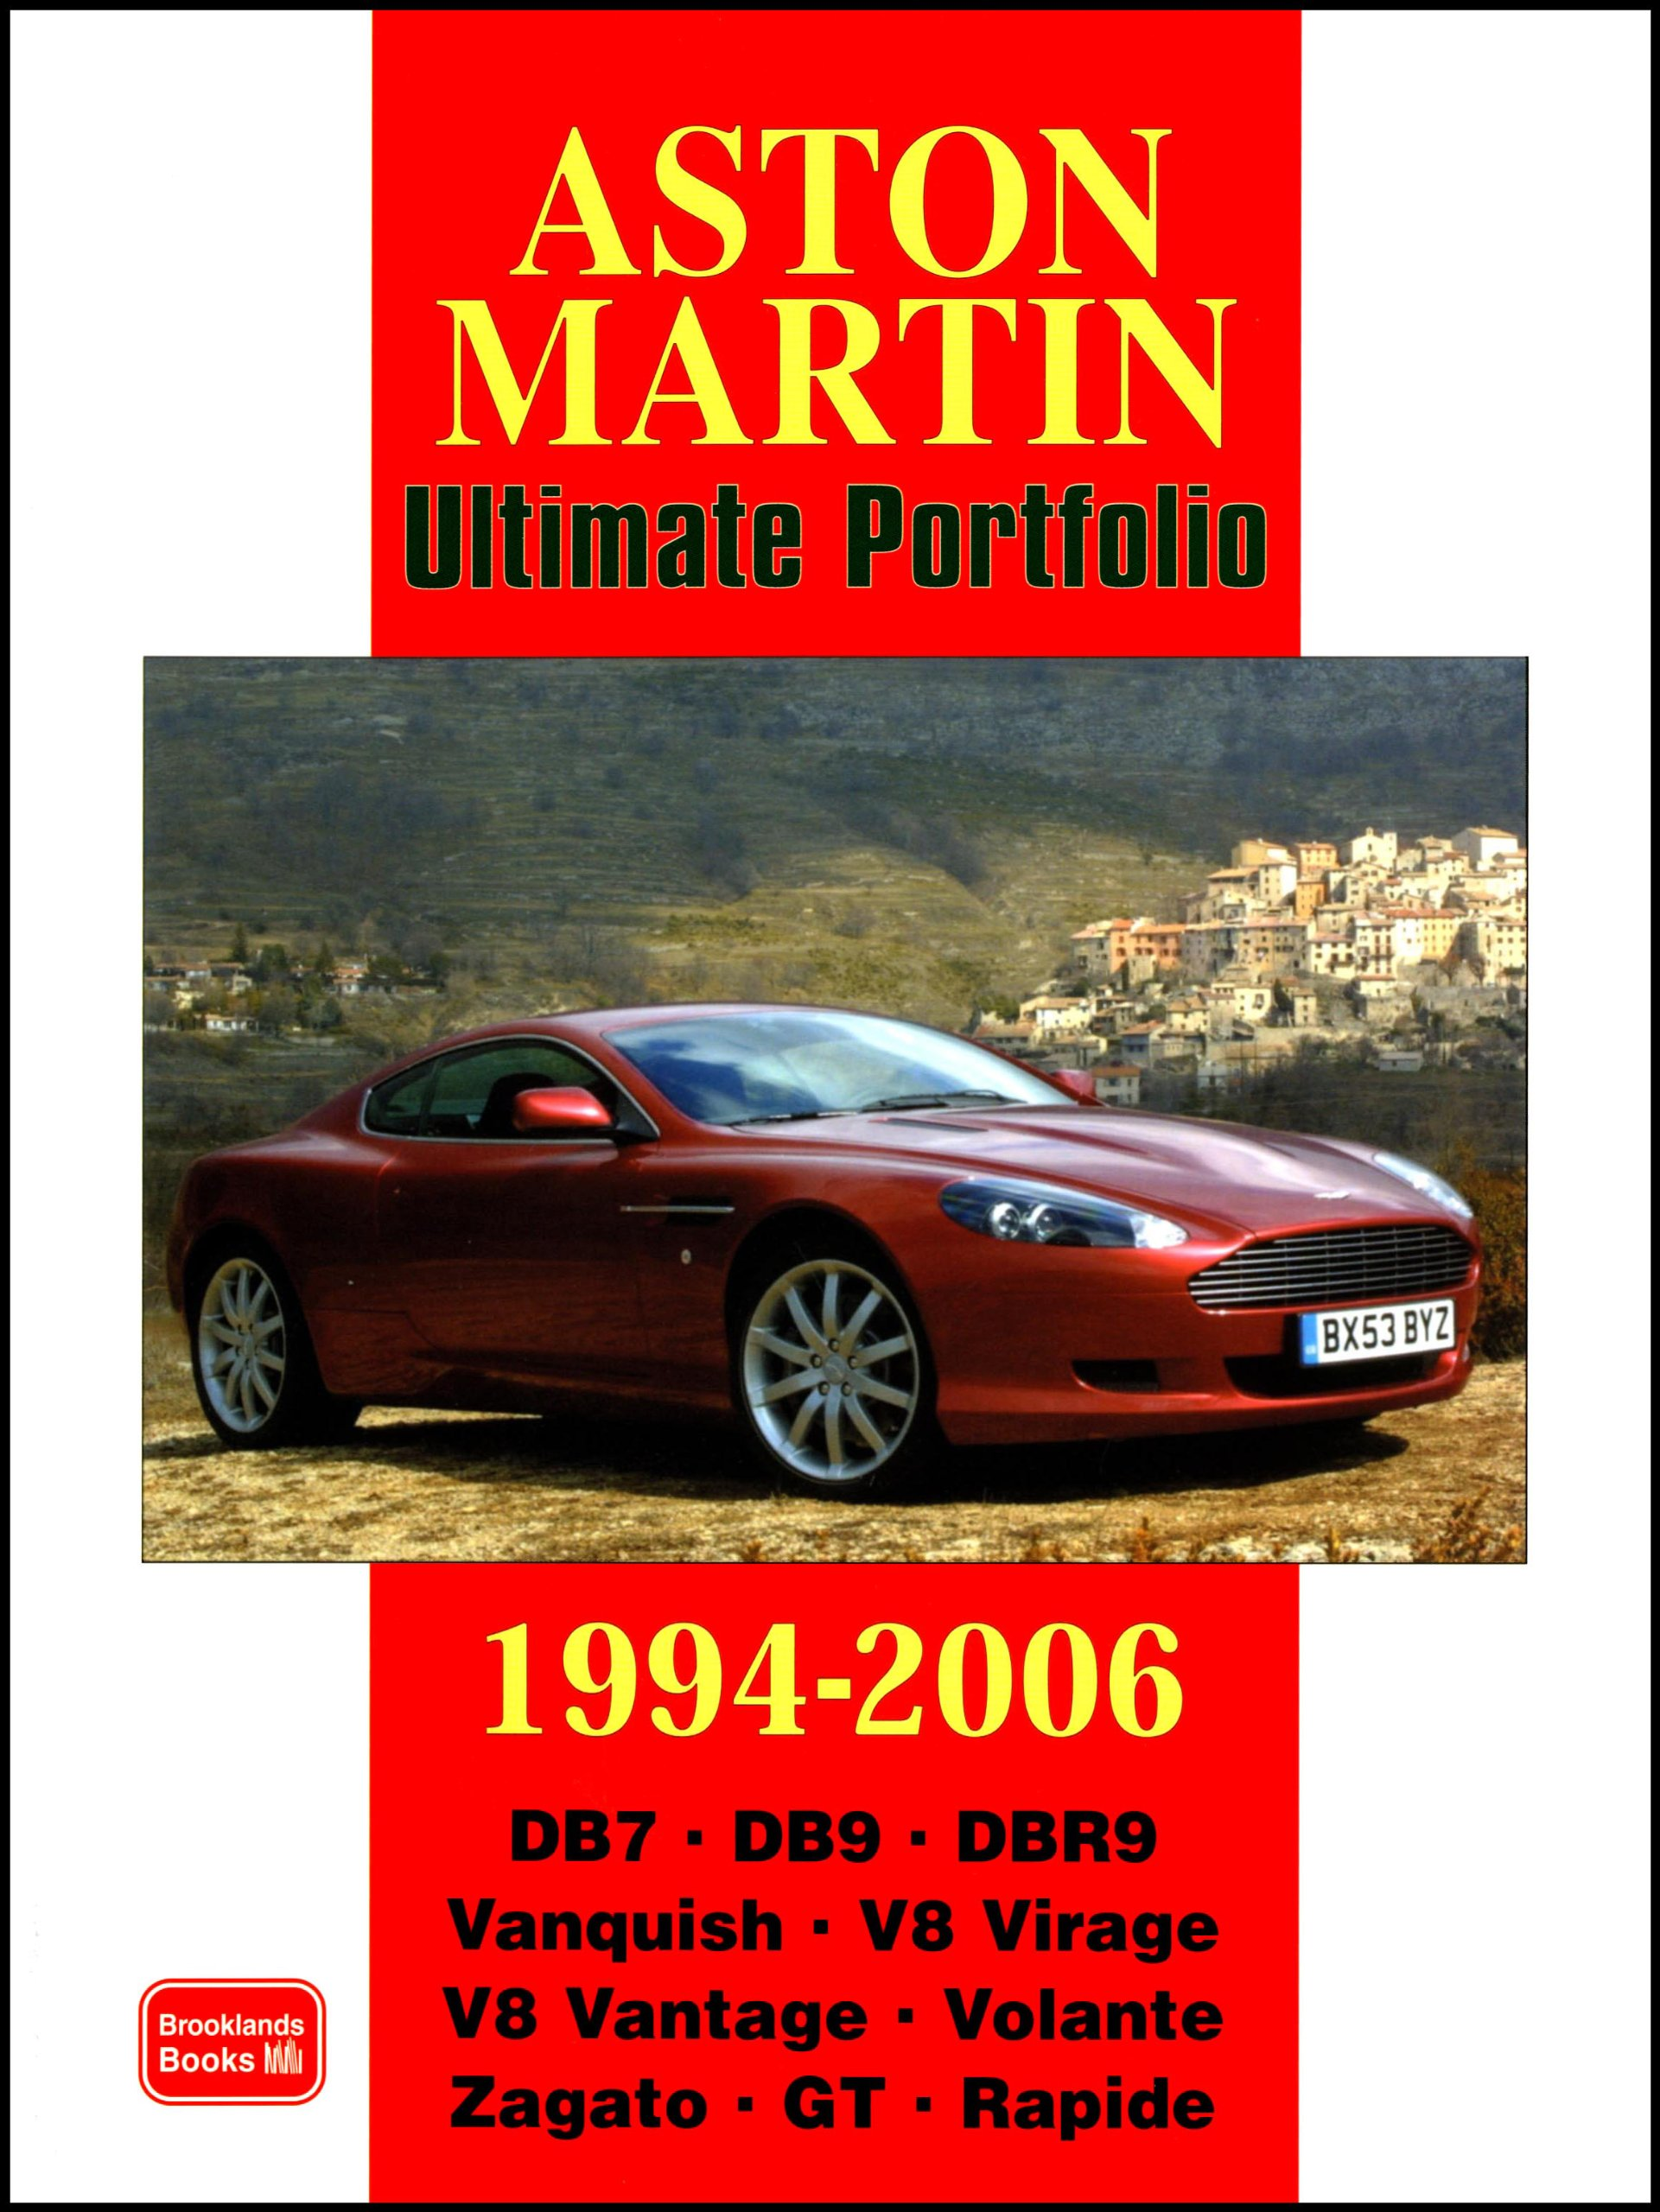 Aston Martin Ultimate Portfolio 1994 2006 Brooklands Books Road Test Series A Collection Of Articles Covering Models Db7 Db9 Dbr9 Vanquish V8 Virage And V8 Vantage Amazon Co Uk R M Clarke 9781855207257 Books